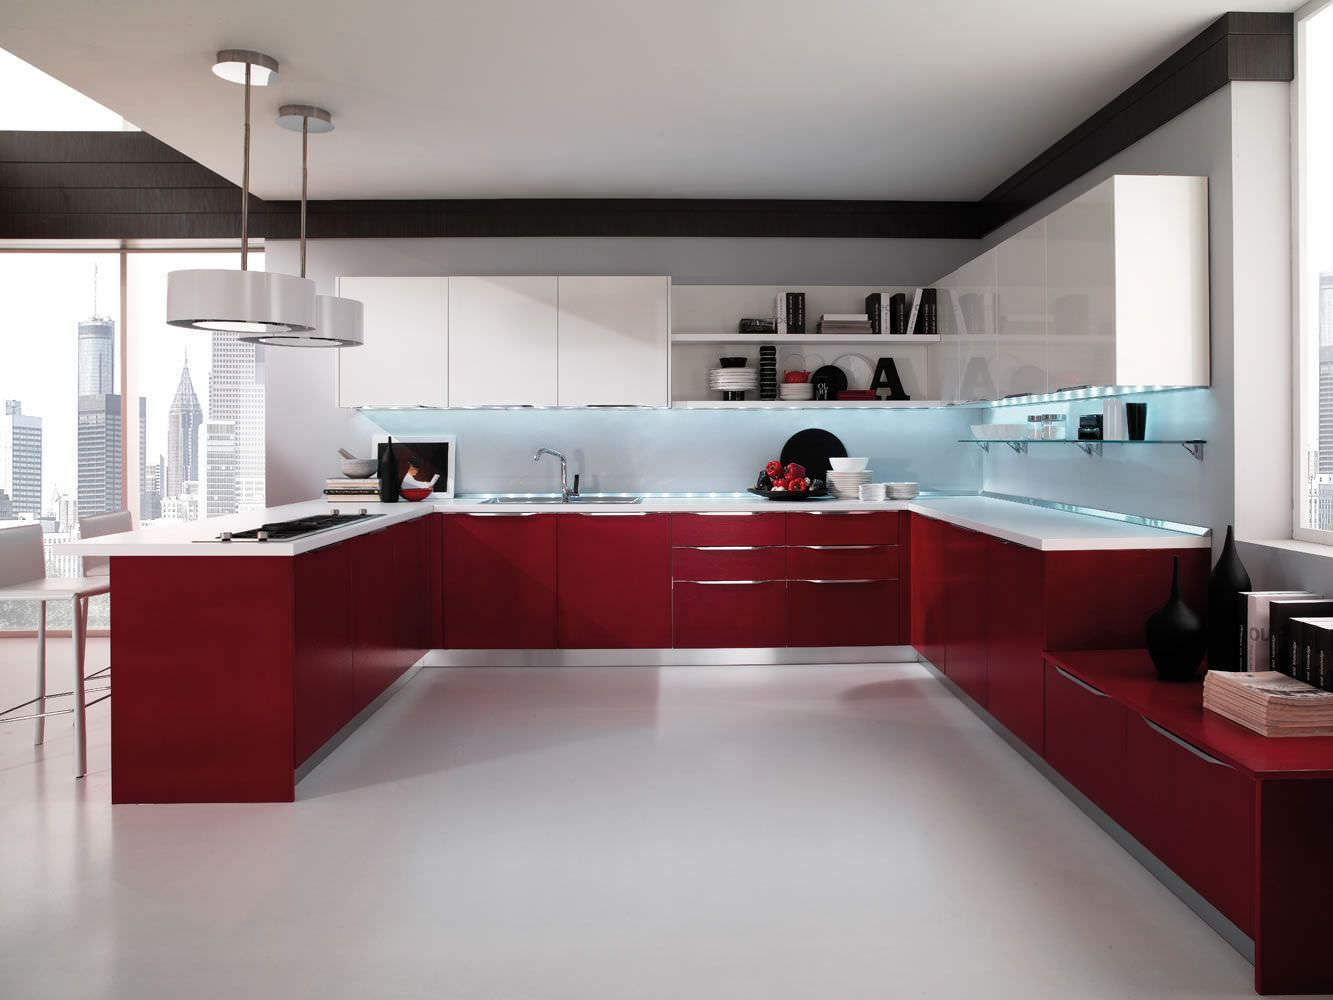 High Gloss Kitchens Ideas And Inspiring Pictures With Shiny Kitchen Fronts High Gloss K Red And White Kitchen Cabinets Red Kitchen Cabinets High Gloss Kitchen